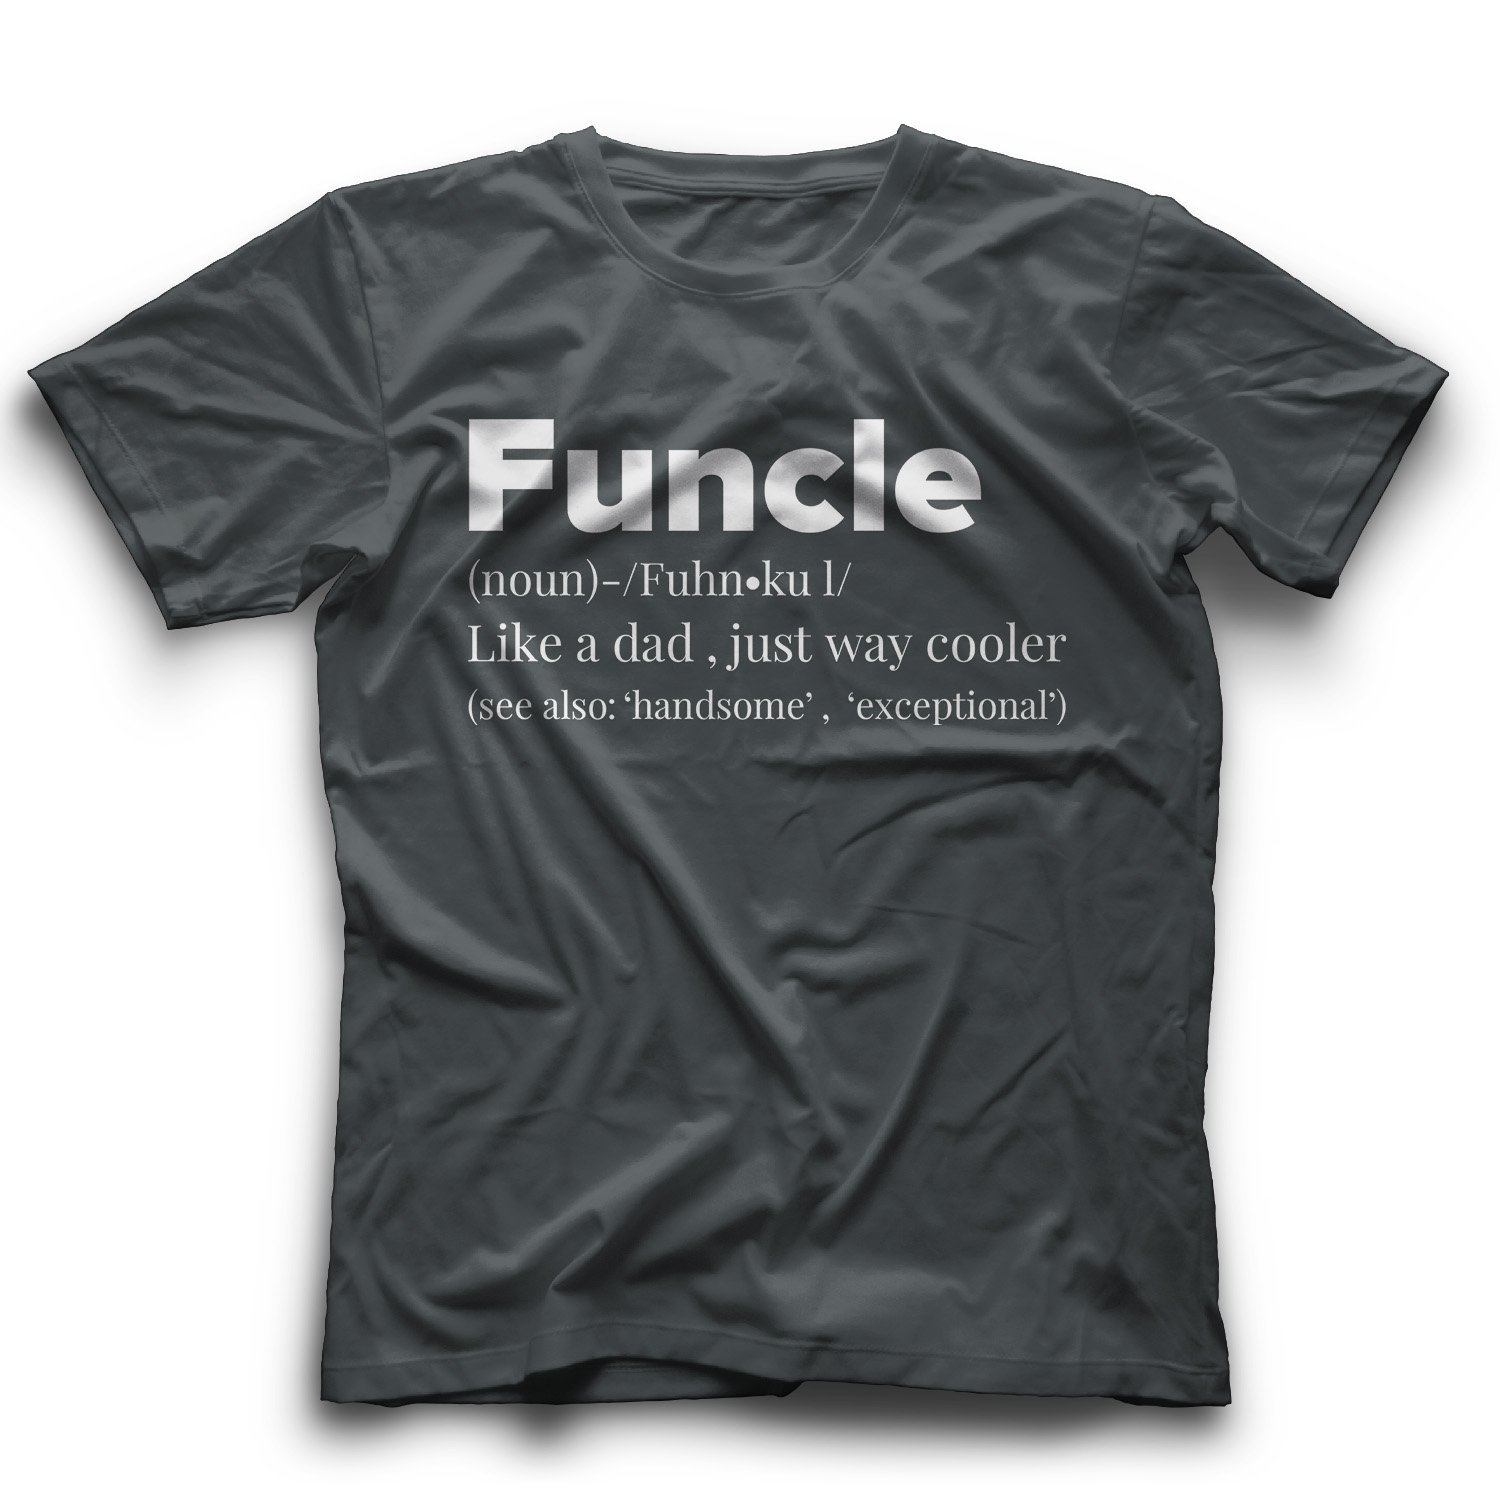 Funcle Shirt Fun Uncle Tshirt Funny Clothing For Uncles T Shirt